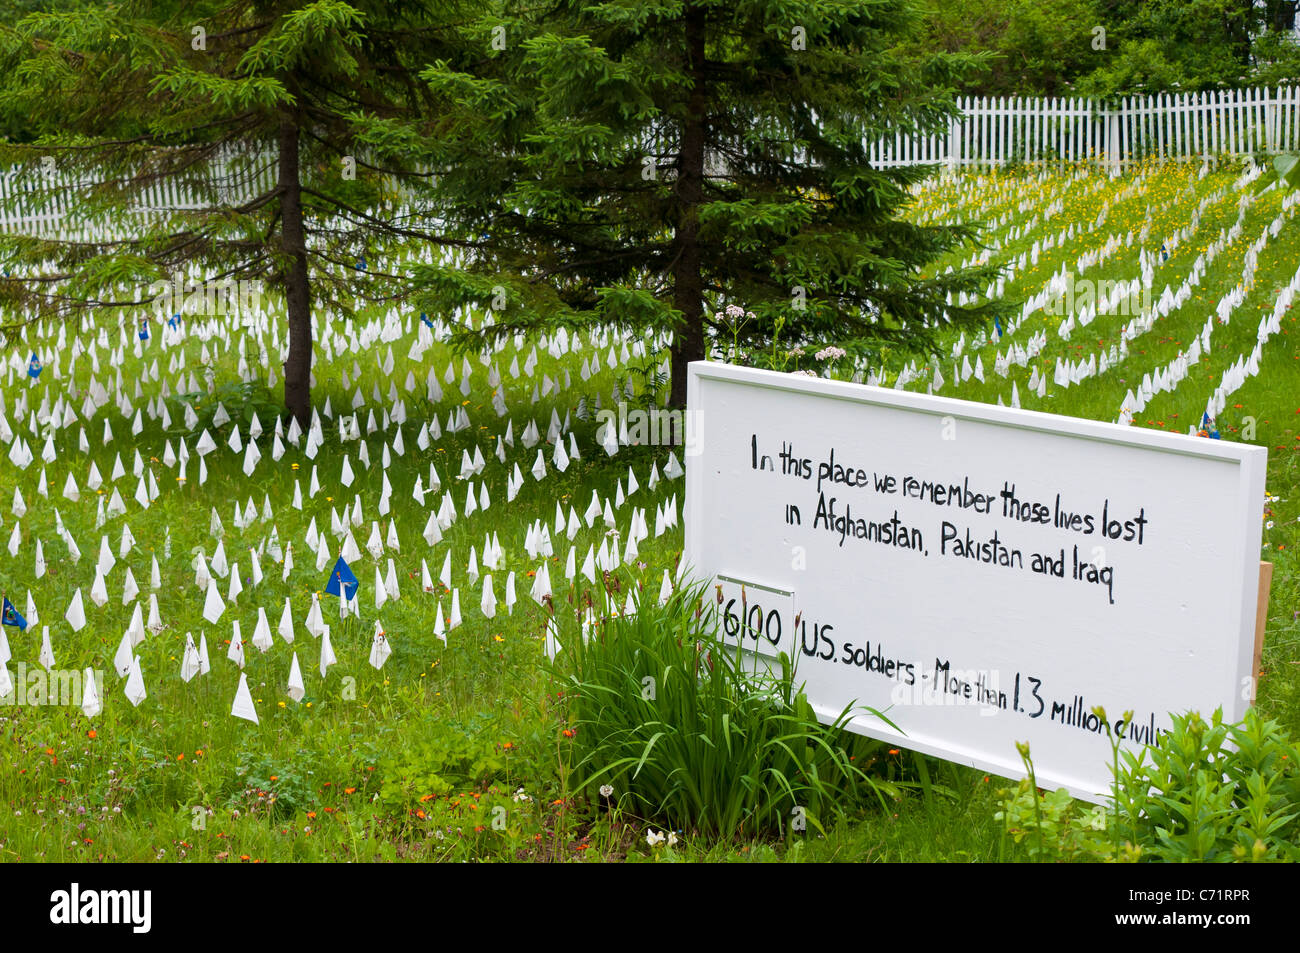 Remembering lives lost in Afghanistan and Iraq Maine United States - Stock Image